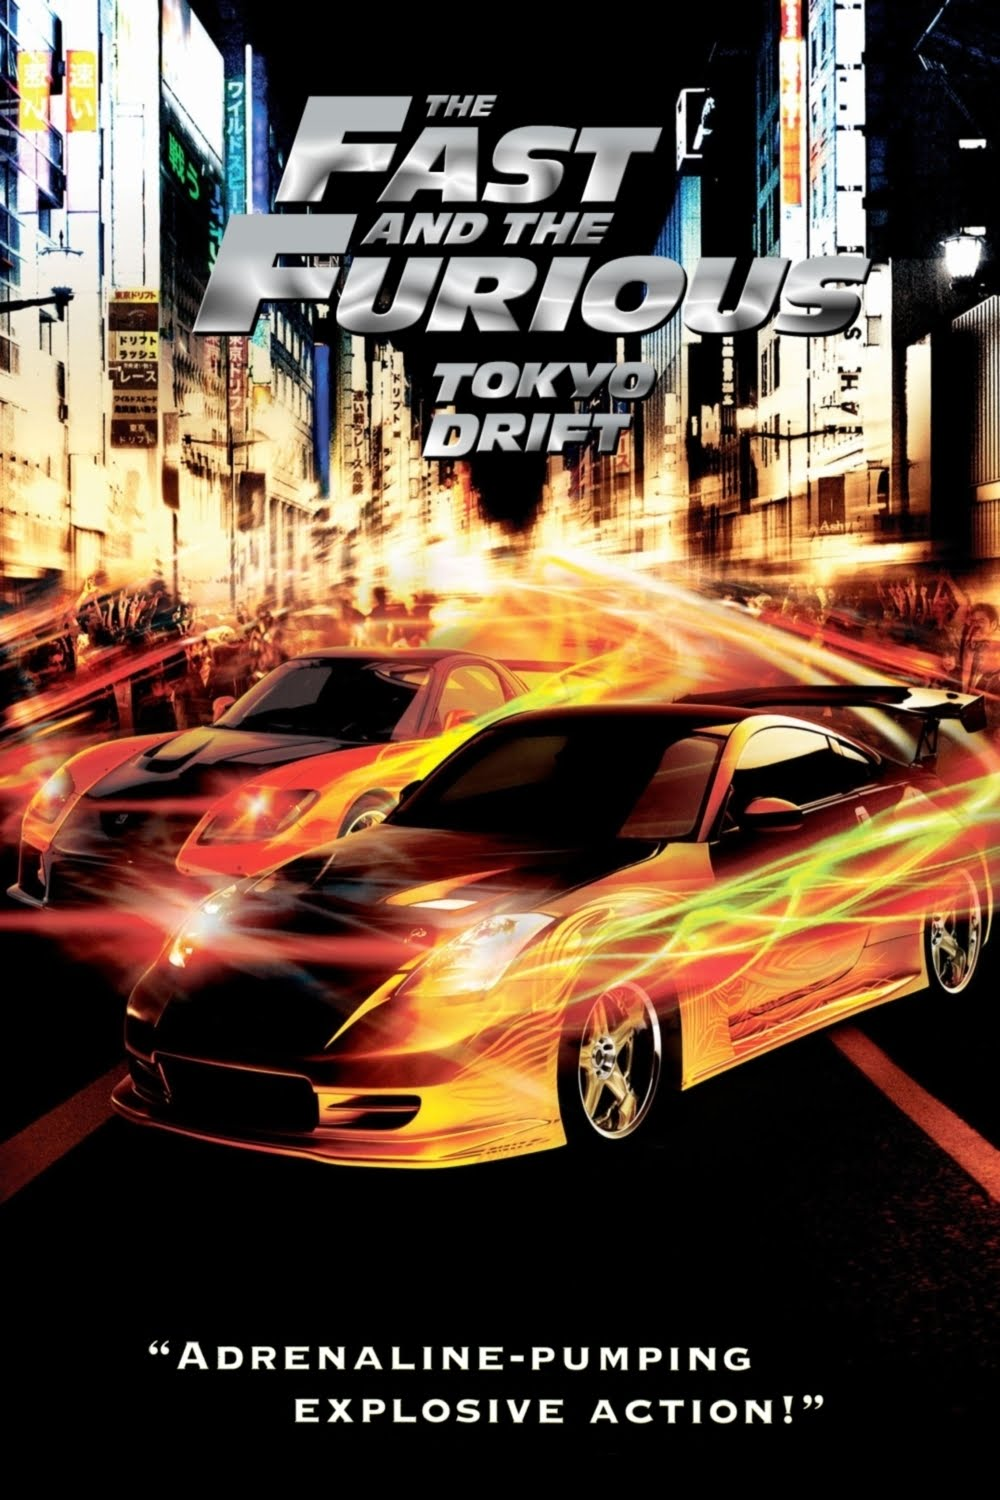 The Fast and the Furious Tokyo Drift 2006 Movie Download HD